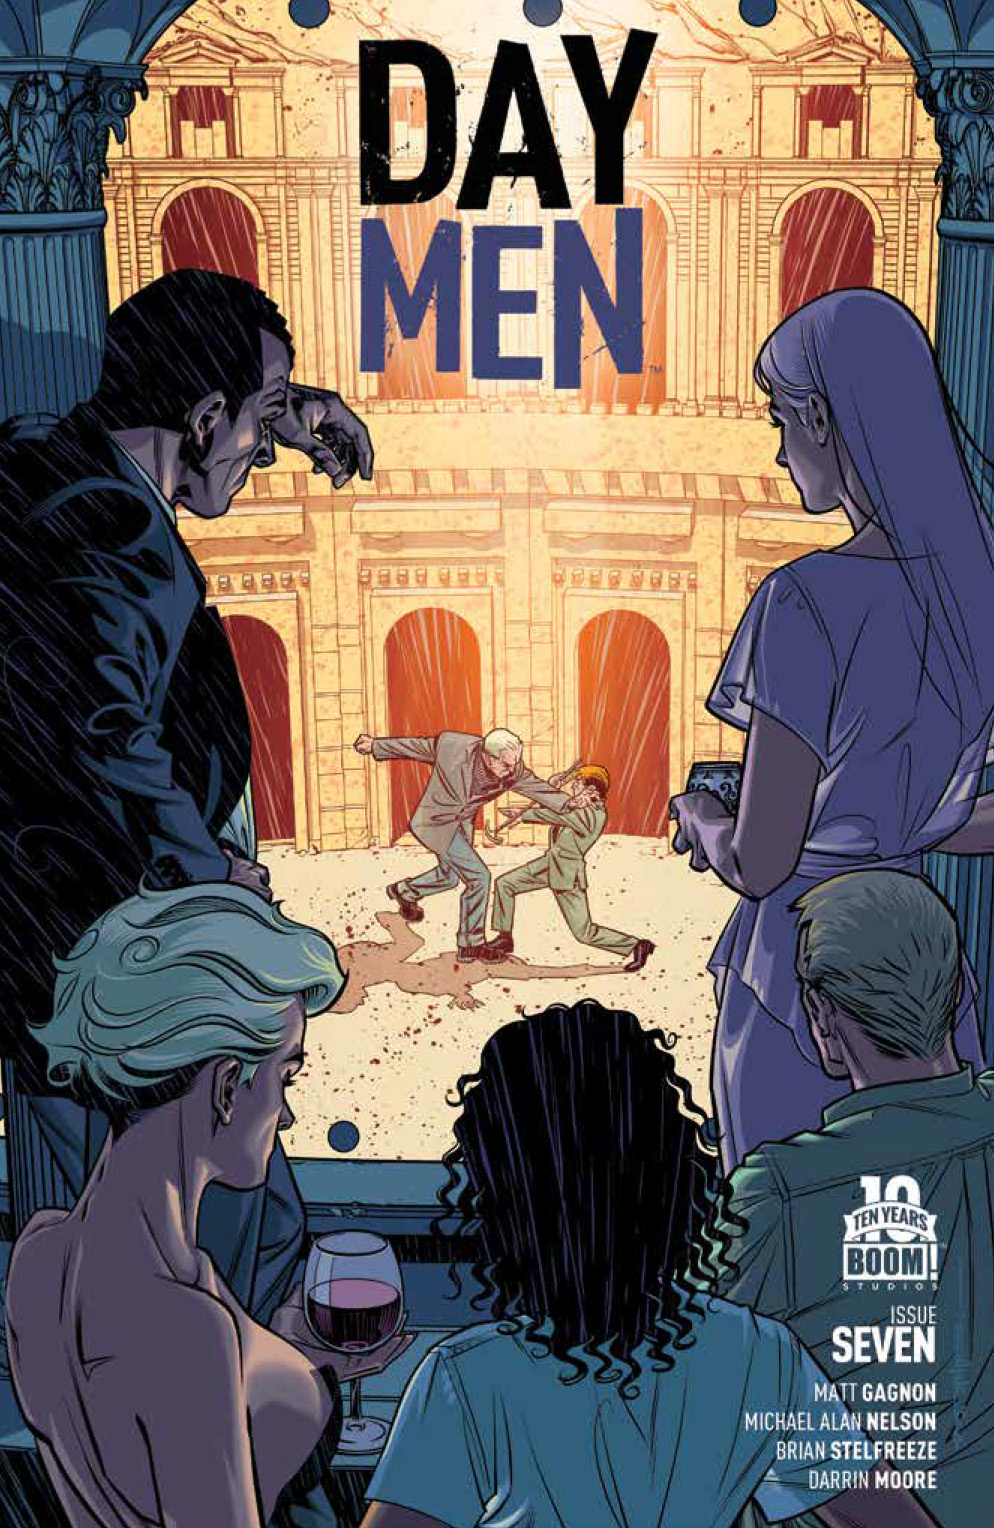 Day Men #7 Preview